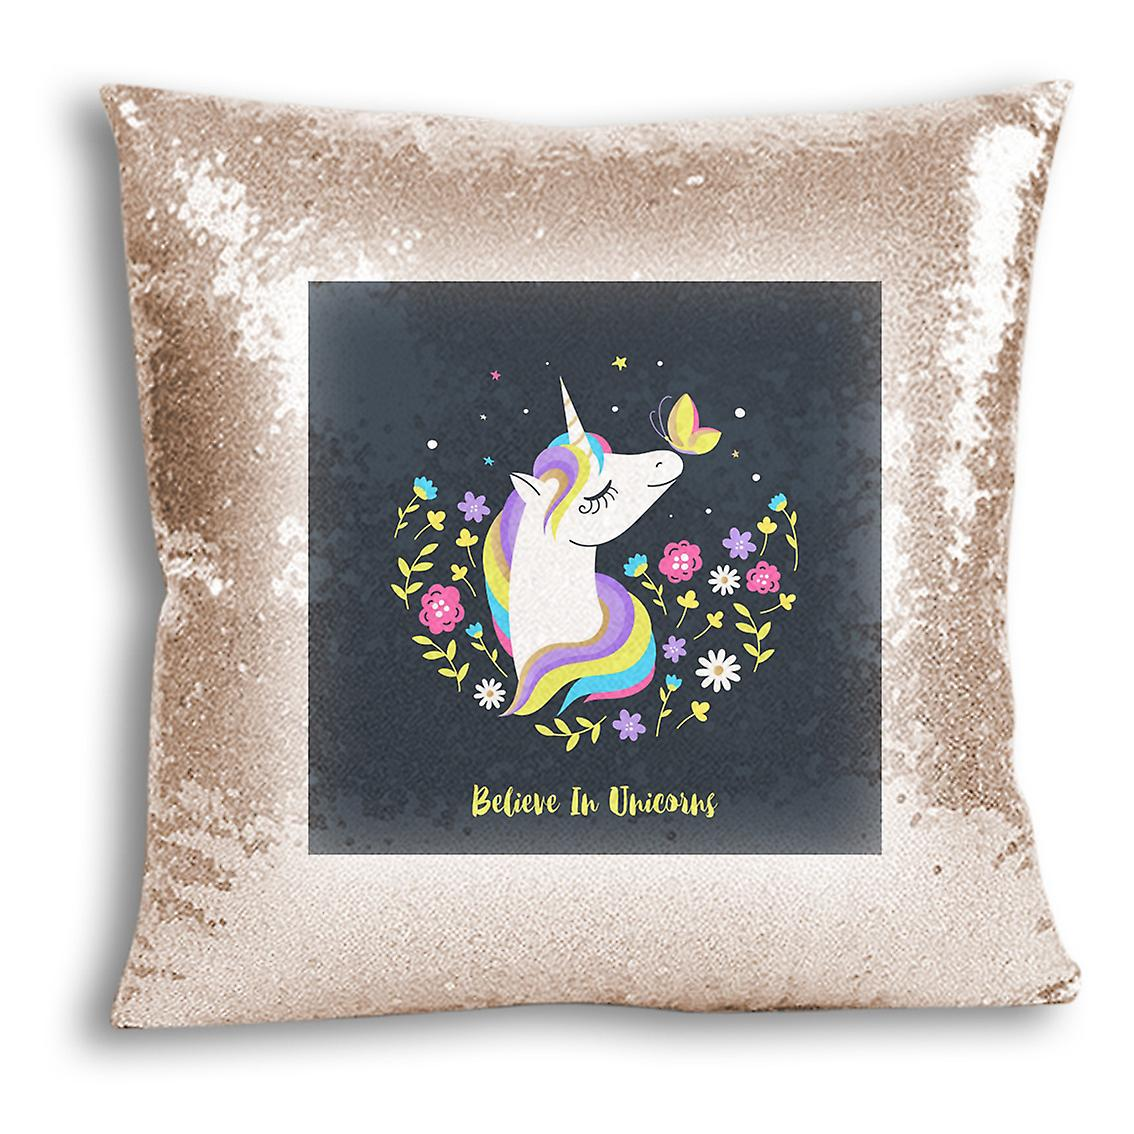 Inserted With Printed Design Sequin Cover For Decor Champagne 14 I Home CushionPillow tronixsUnicorn WYDH9IE2